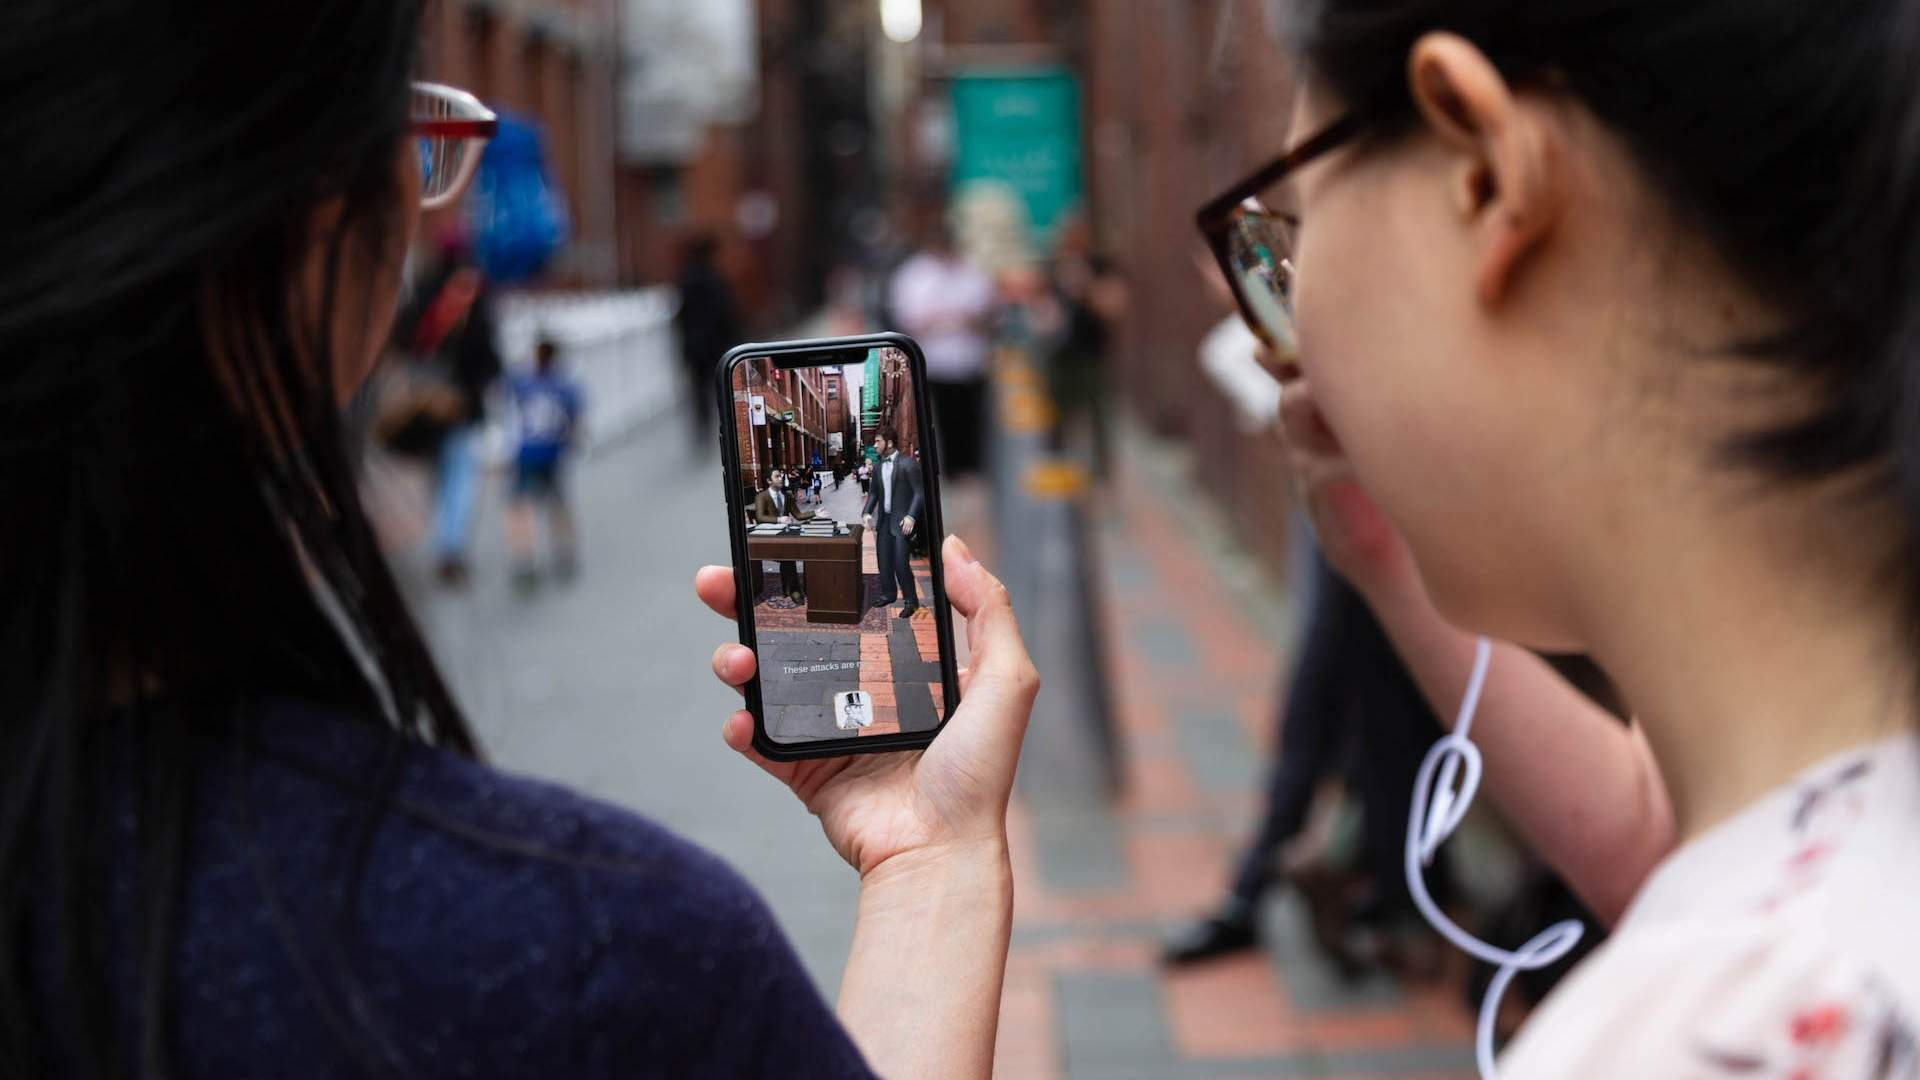 Eastern Market Murder is Melbourne's New Augmented Reality Smartphone Game Based on a True Crime